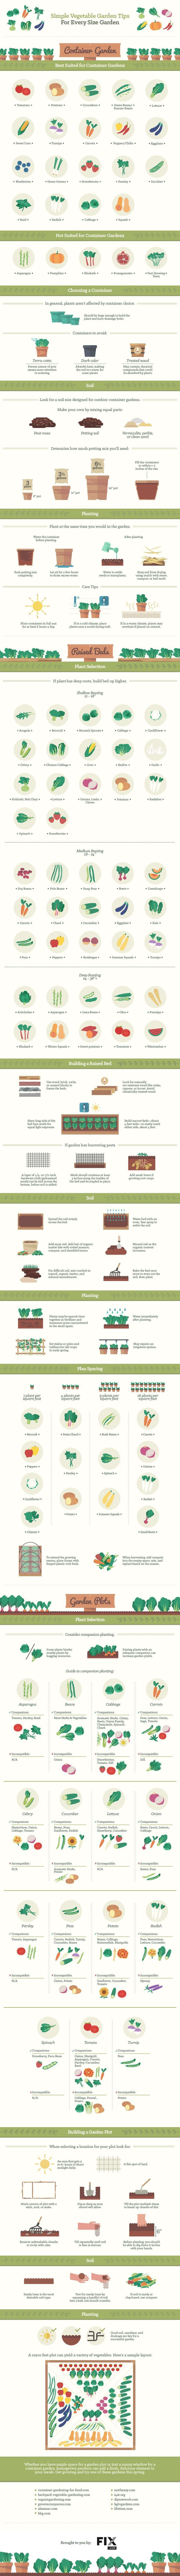 Simple Vegetable Garden Tips For Every Size Garden Vegetable Garden Tips Small Space Gardening Container Gardening